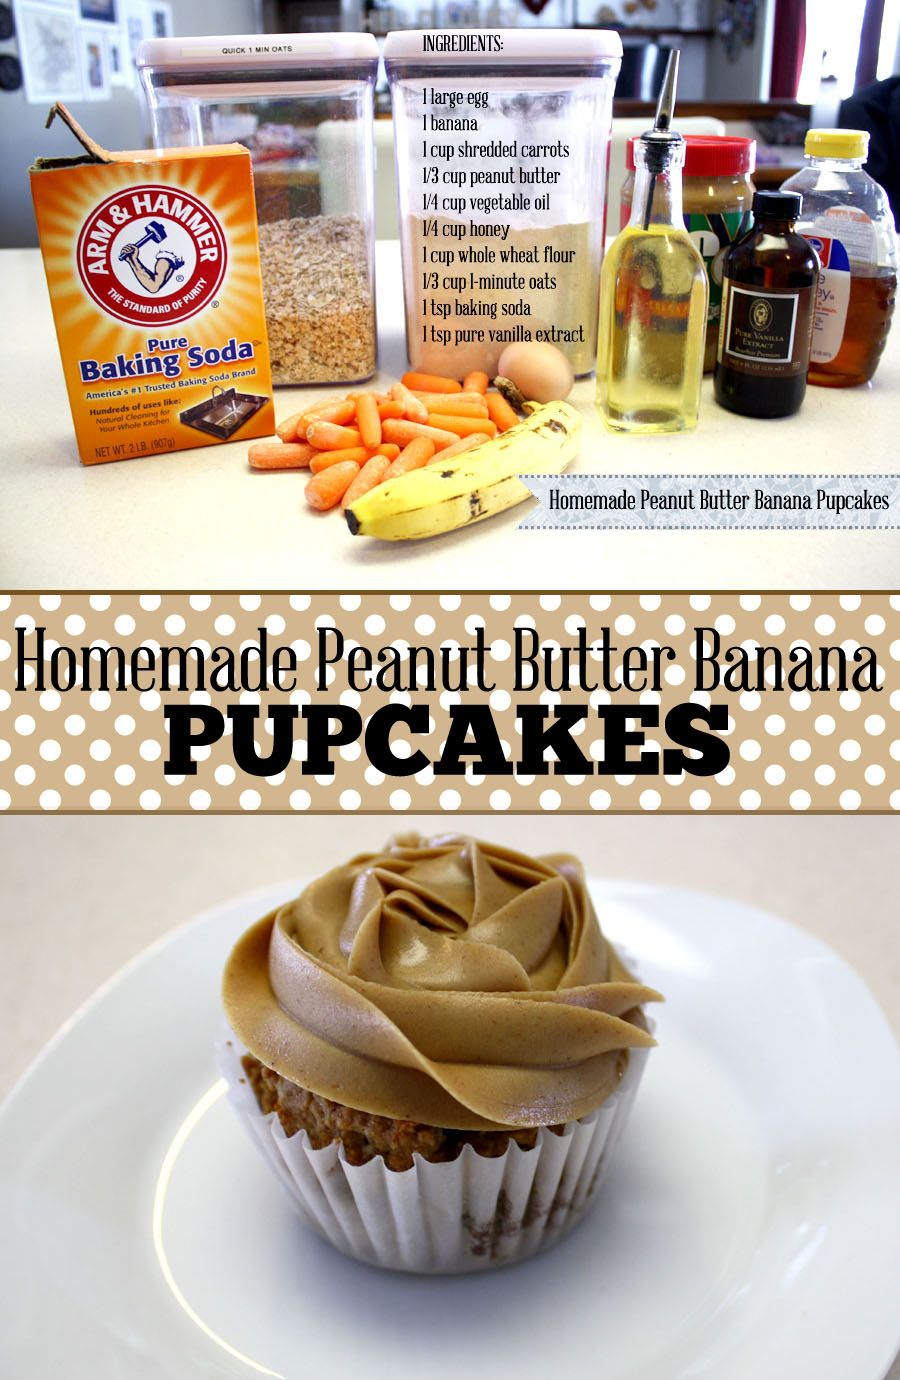 Peanut Butter Banana Pupcakes Recipe Homemade Dog Biscuits Dog